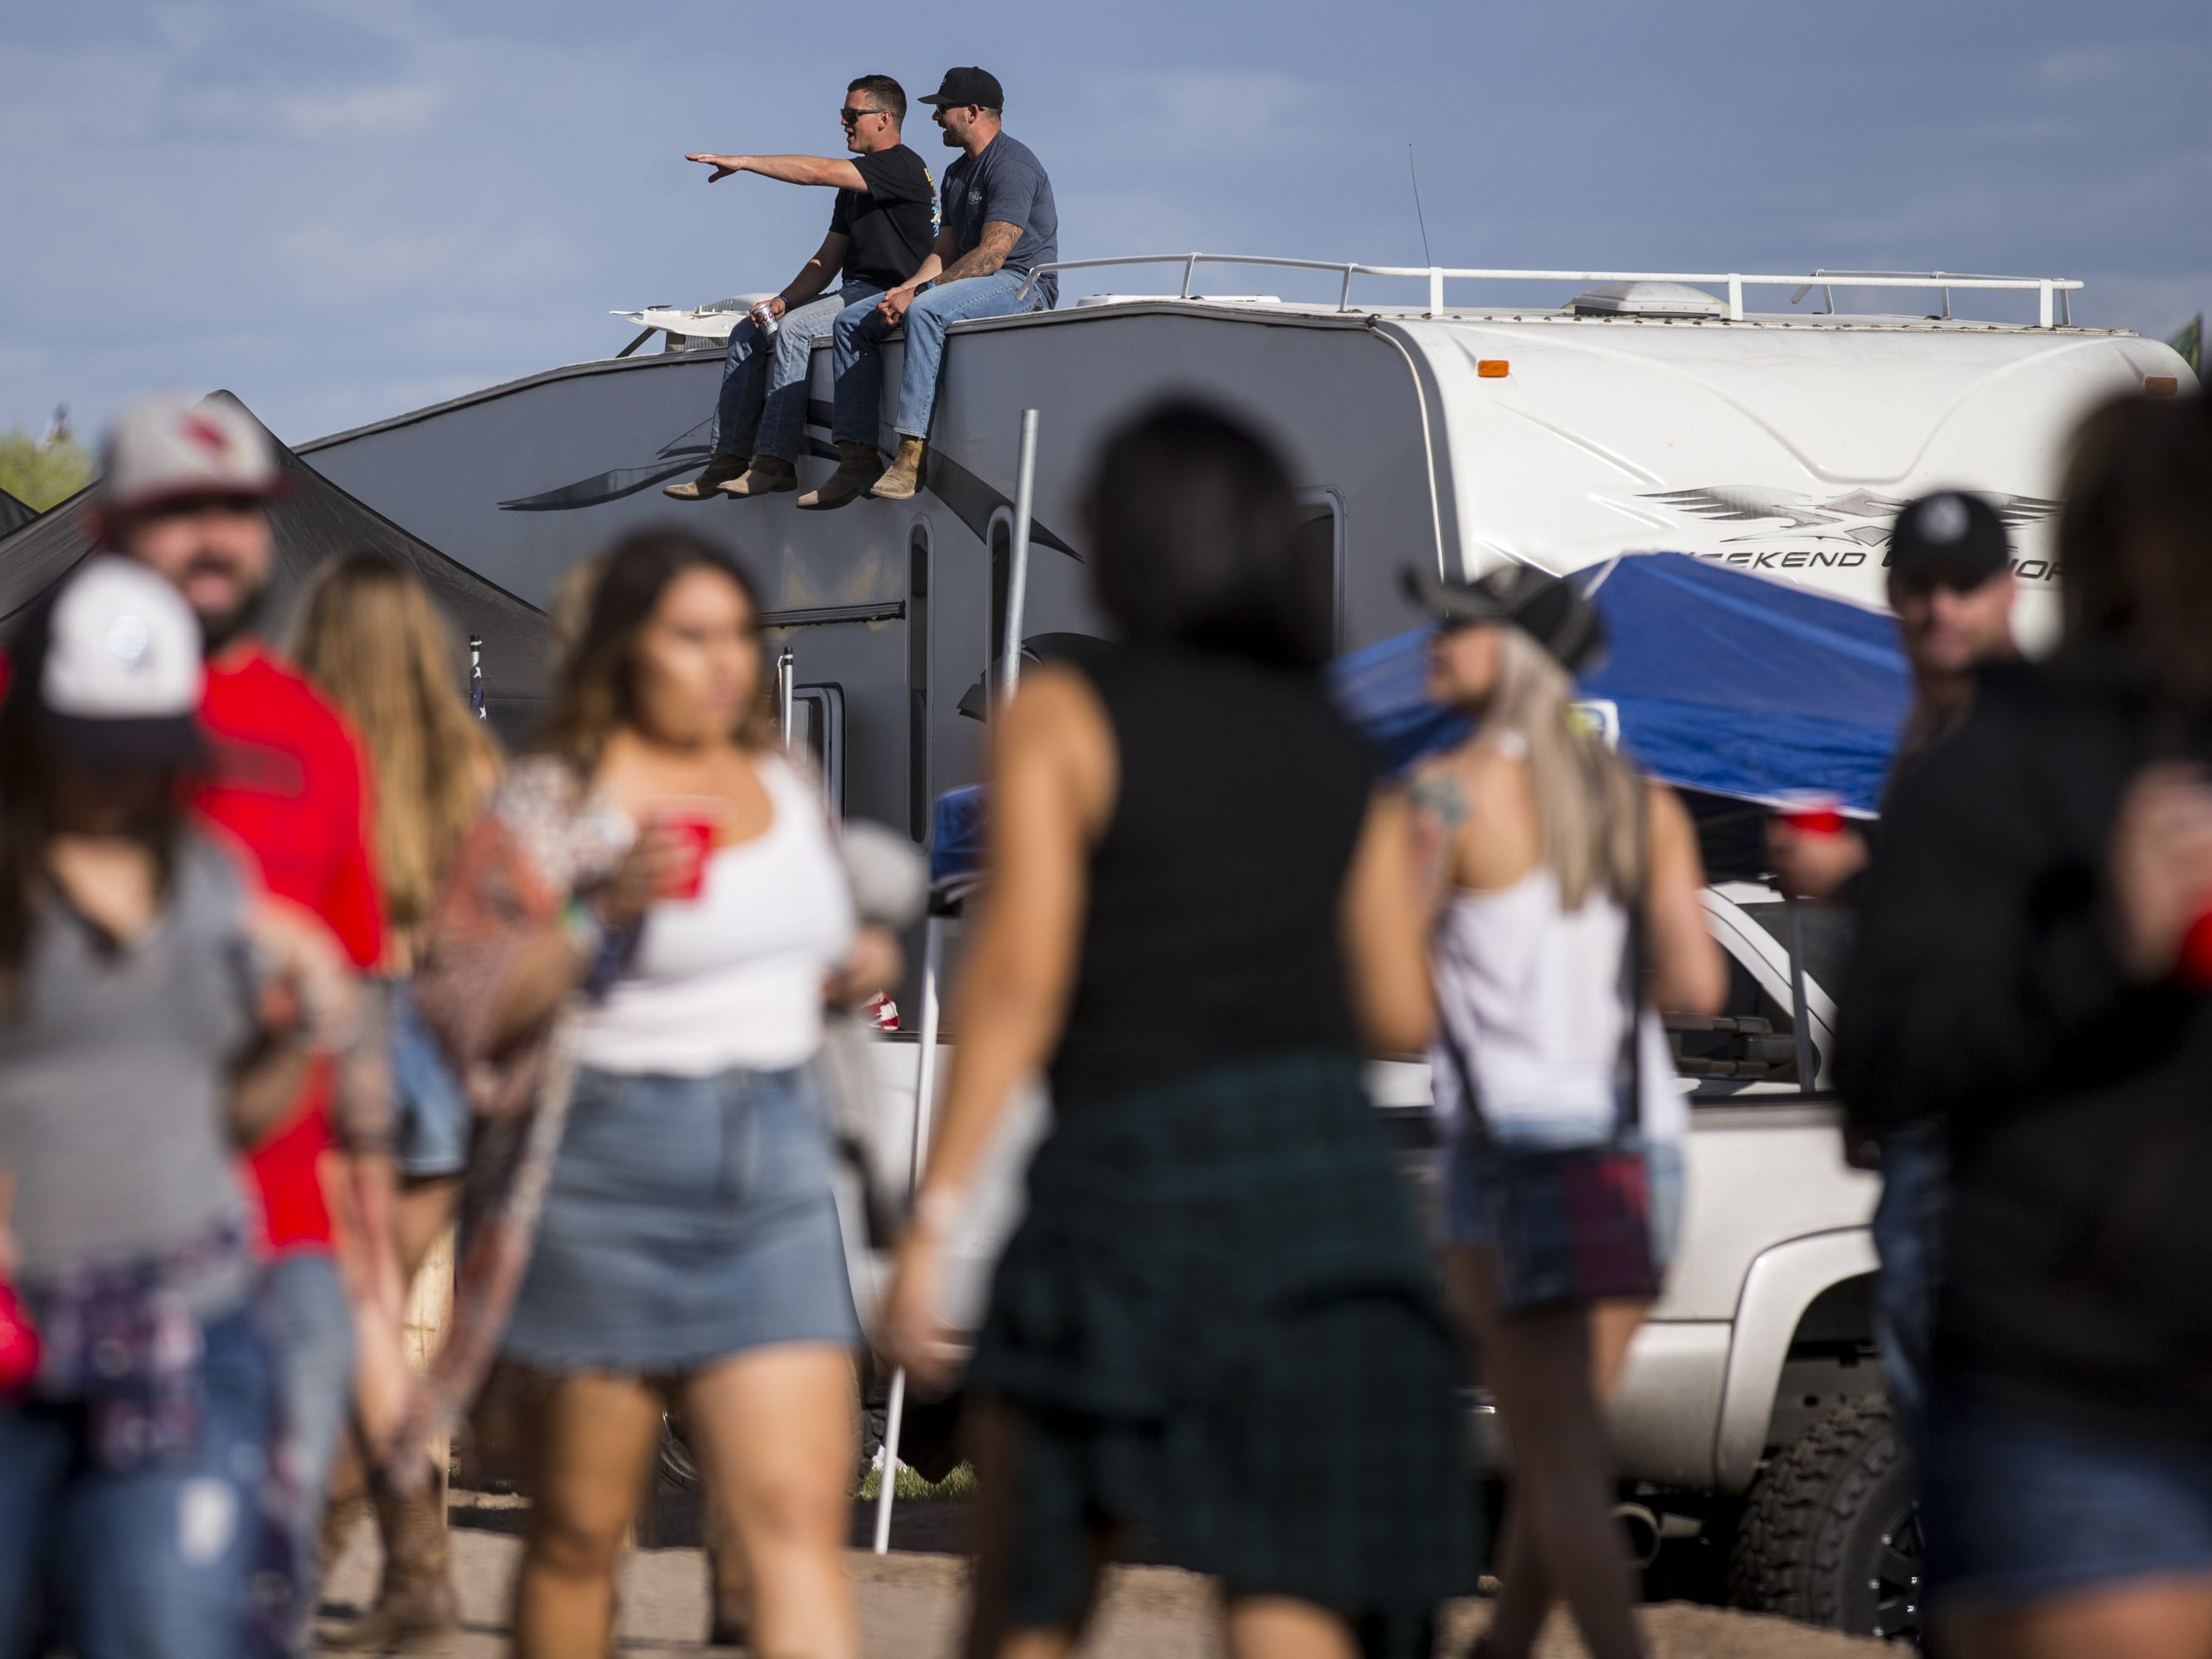 People sit on top of an RV on Friday, April 12, 2019, during Day 2 of Country Thunder Arizona in Florence, Ariz.